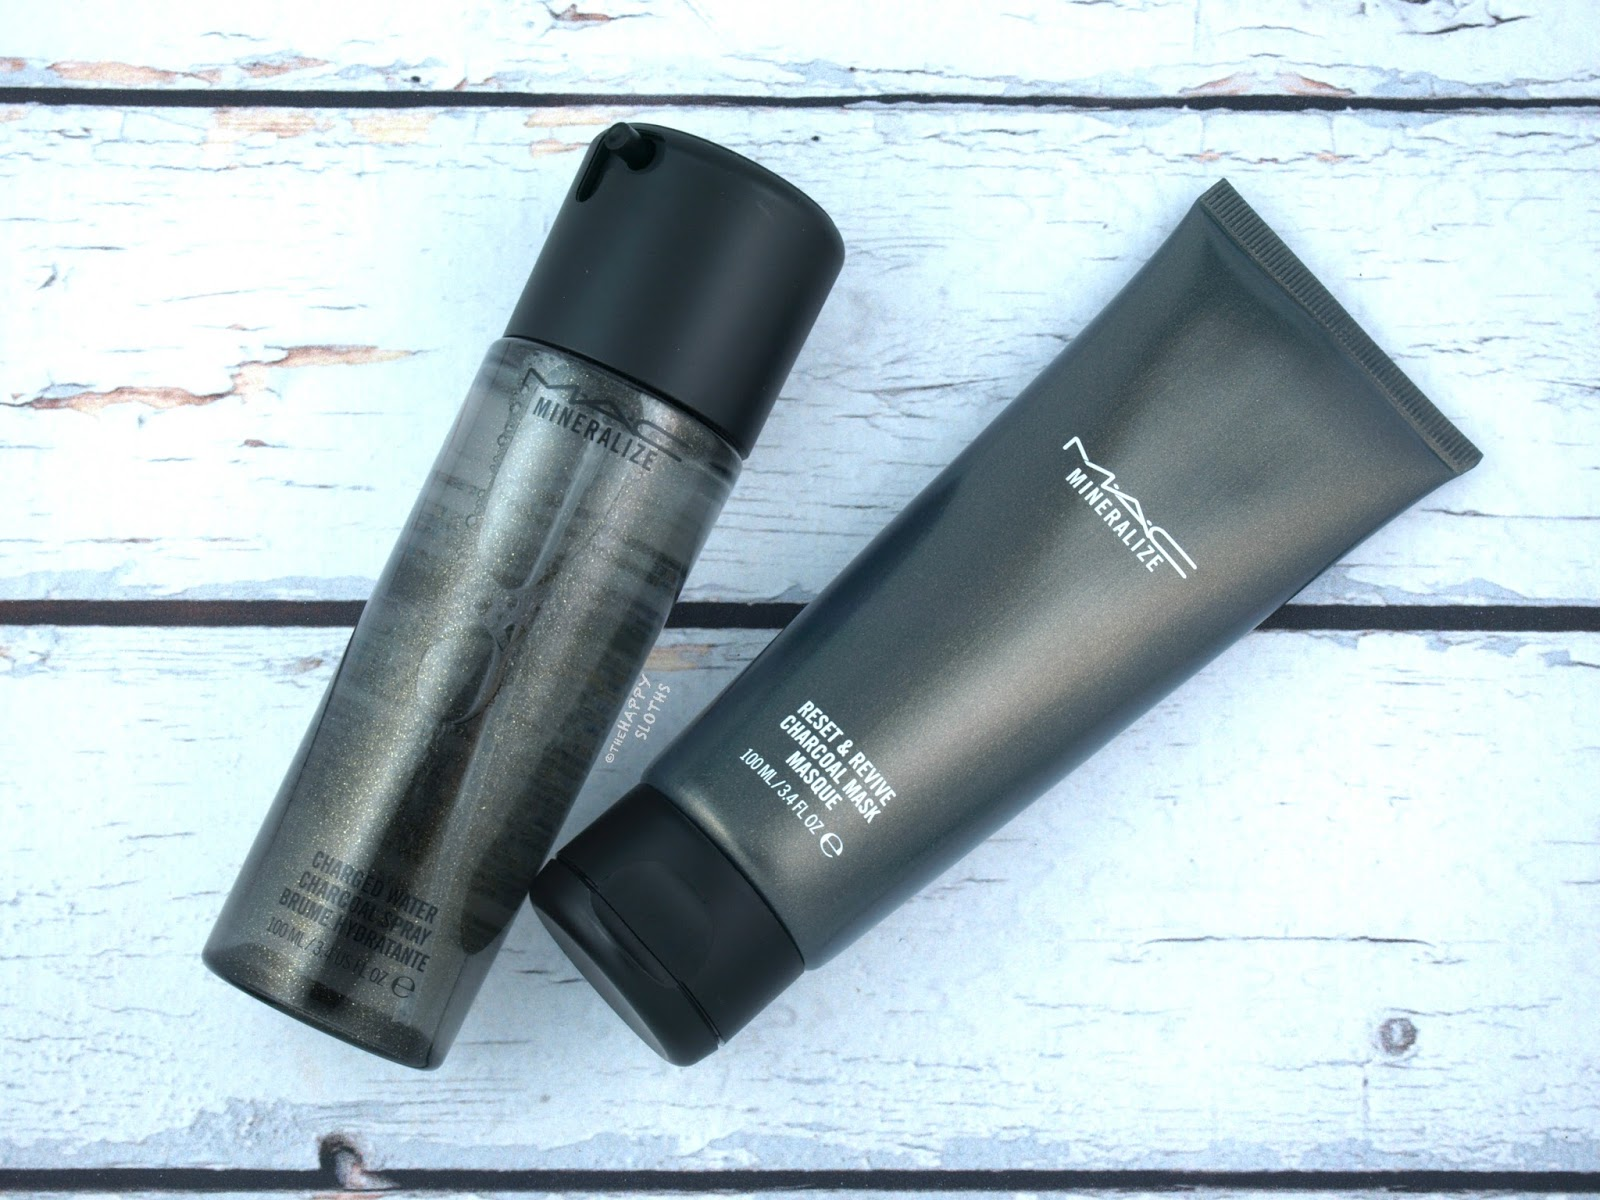 MAC | Mineralize Total Detox Charged Water Charcoal Spray and Reset & Revive Charcoal Mask: Review and Swatches